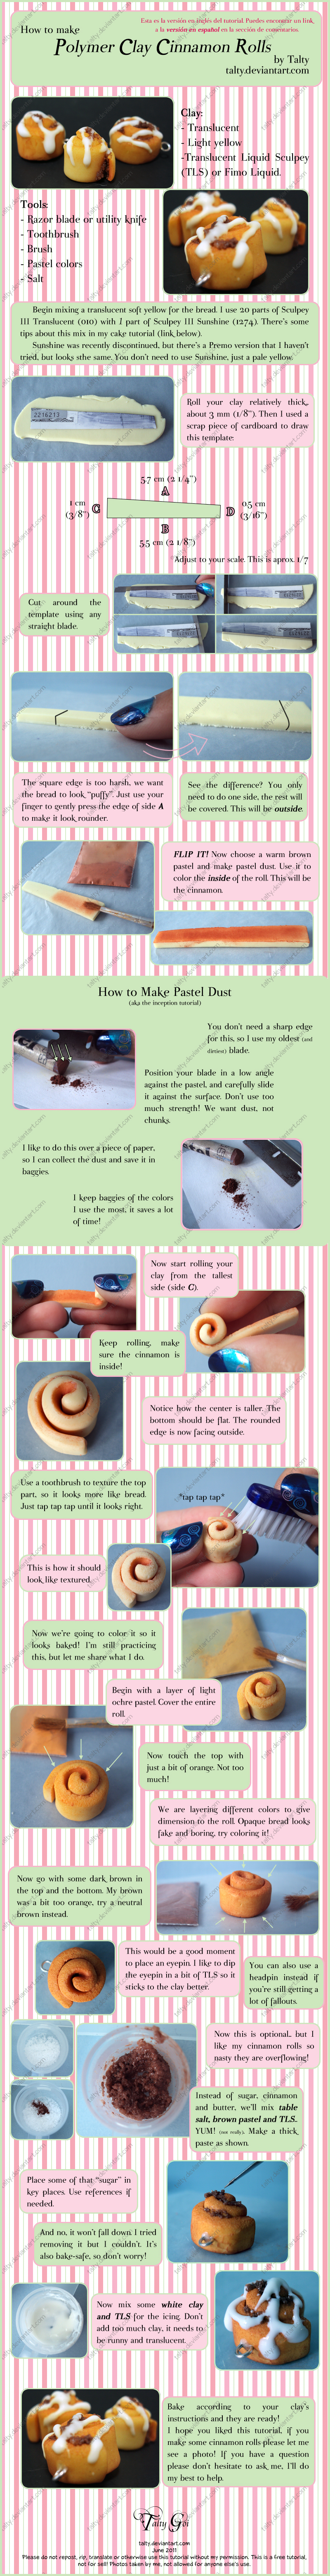 Polymer Clay Cinnamon Roll Tut by Talty